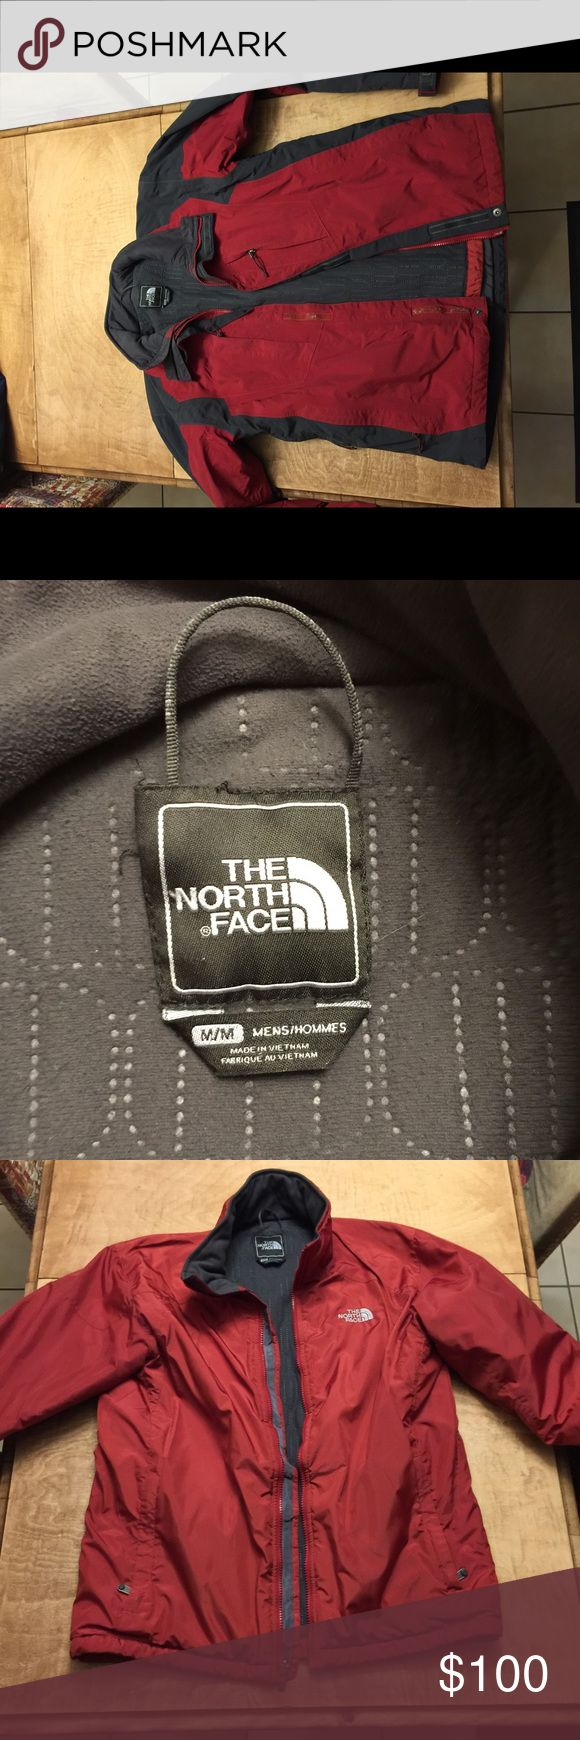 Men's medium North Face winter coat Hardly used! Fleece liner that you can take out! Great coat! The North Face Jackets & Coats Ski & Snowboard